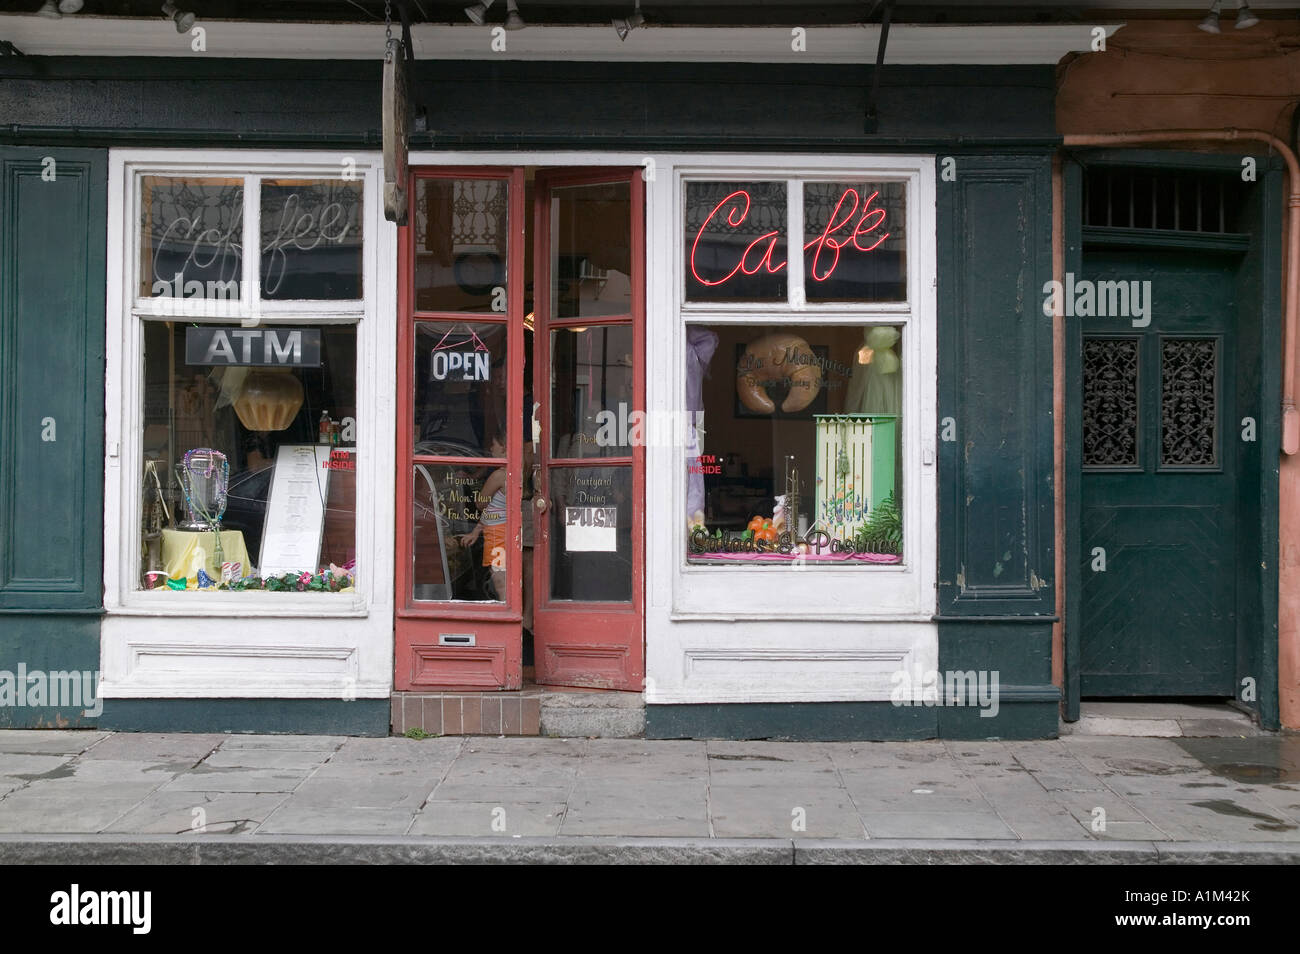 A bakery in the French Quarter in New Orleans Stock Photo Royalty